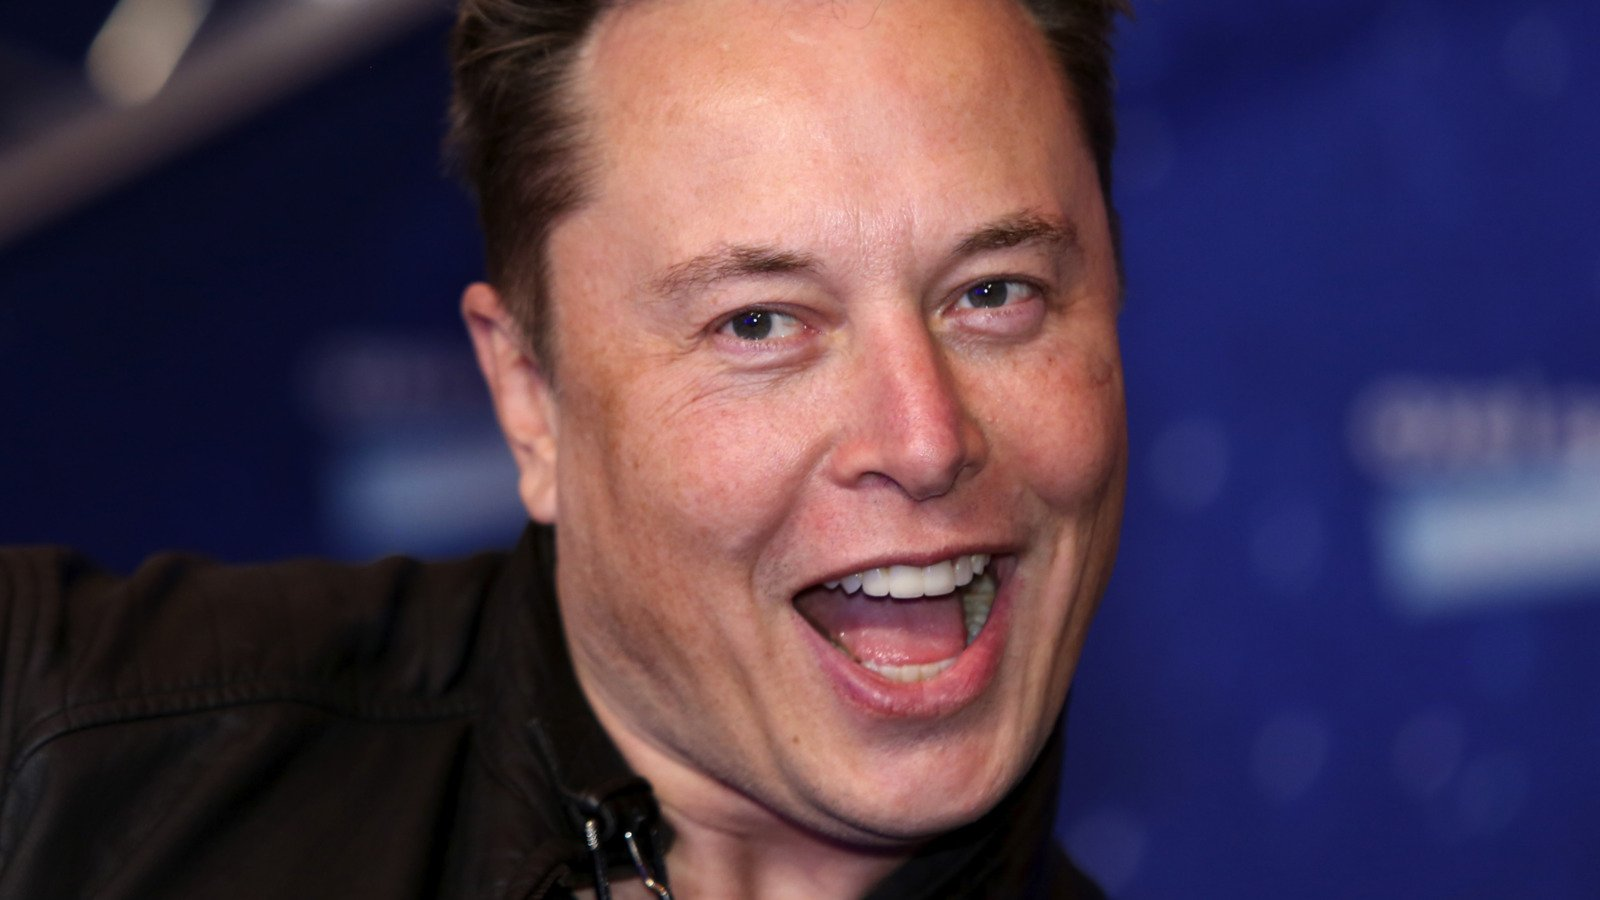 How Elon Musk Could Become The World's First Trillionaire